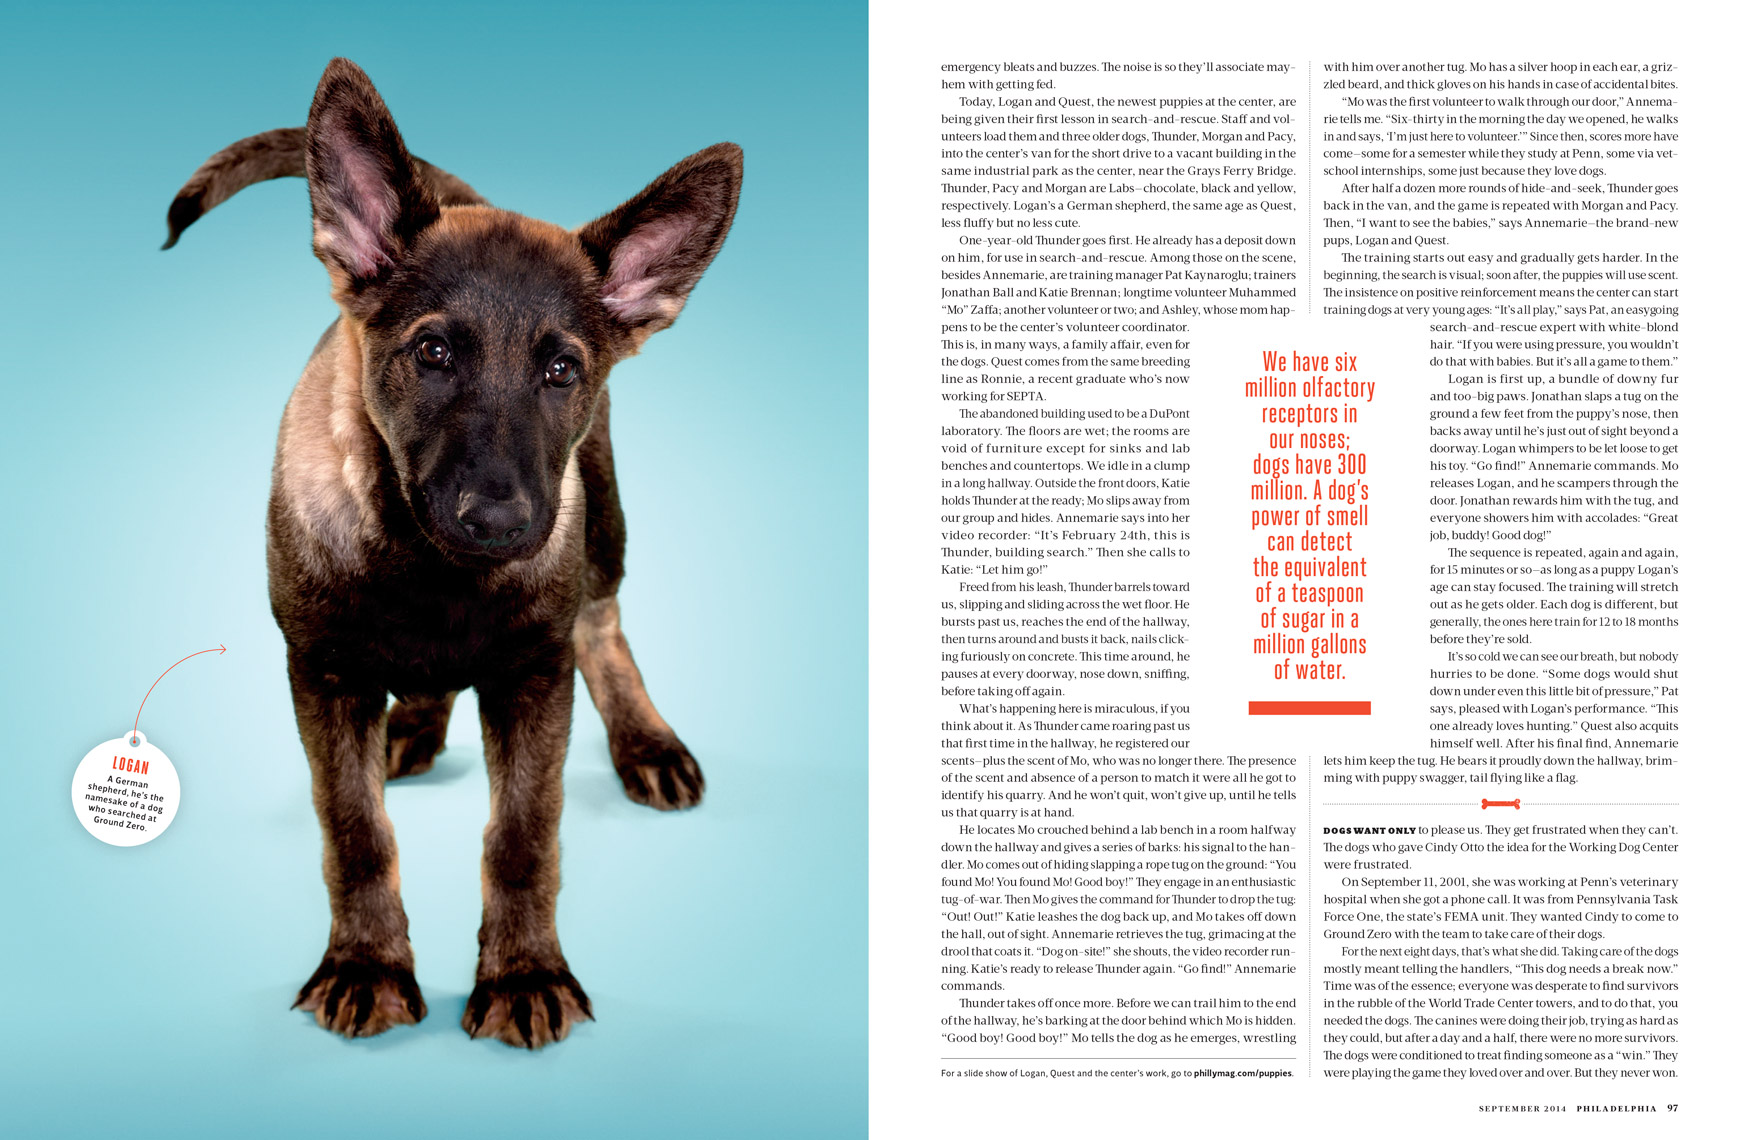 Philadelphia-Magazine---THIS-PUPPY-COULD-SAVE-YOUR-LIFE-Feature---Spread-3---September-2014---photographer-Joseph-Balestra.tif